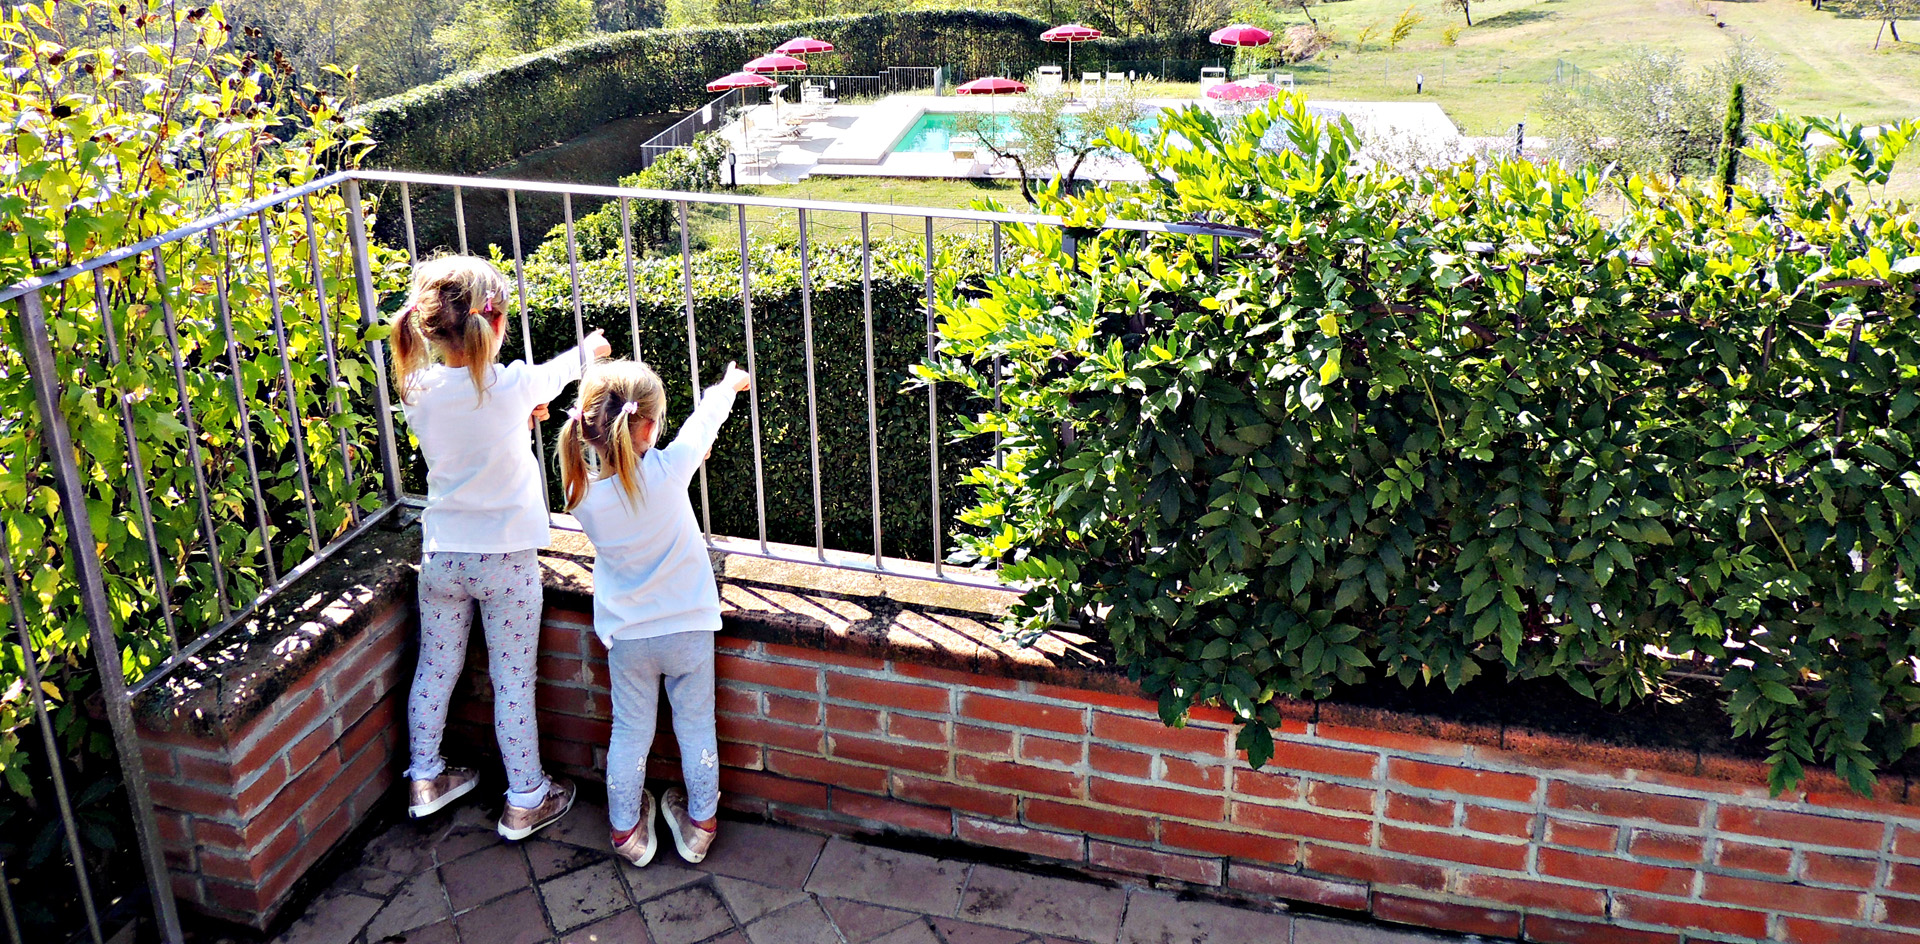 Collect Family Memories with your Children in Tuscany